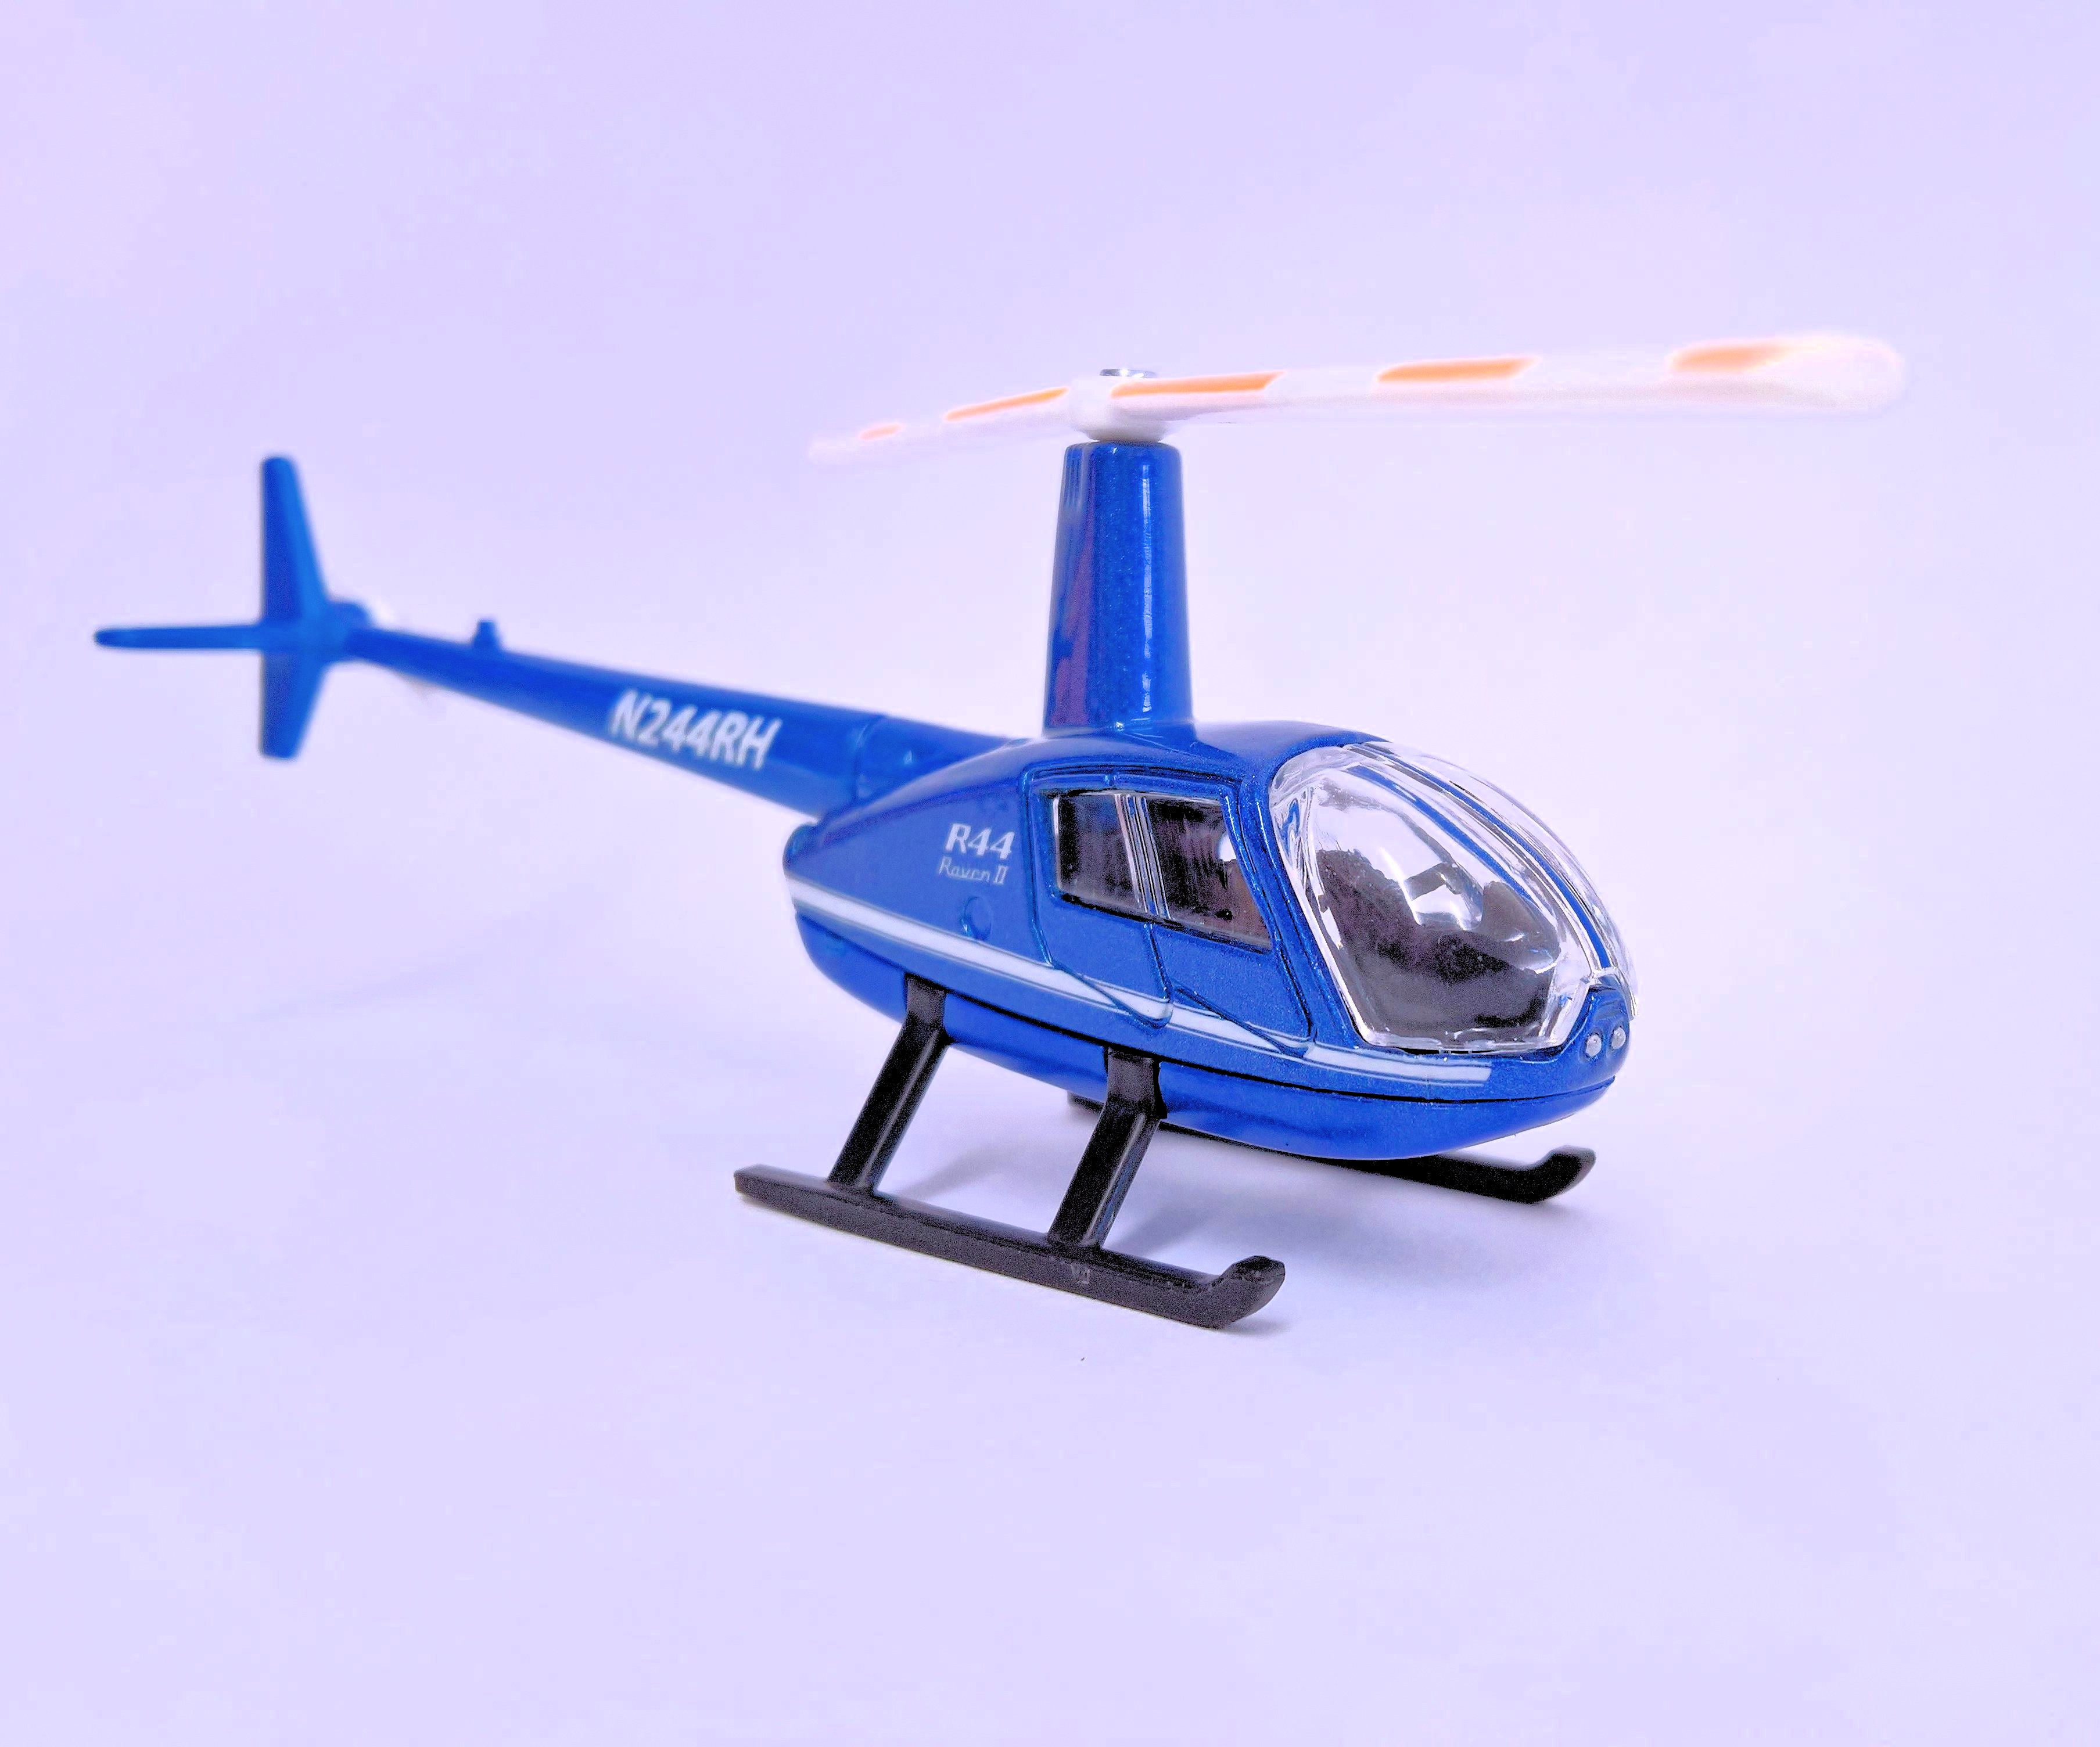 Toy Helicopter Wallpapers High Quality   Download Free